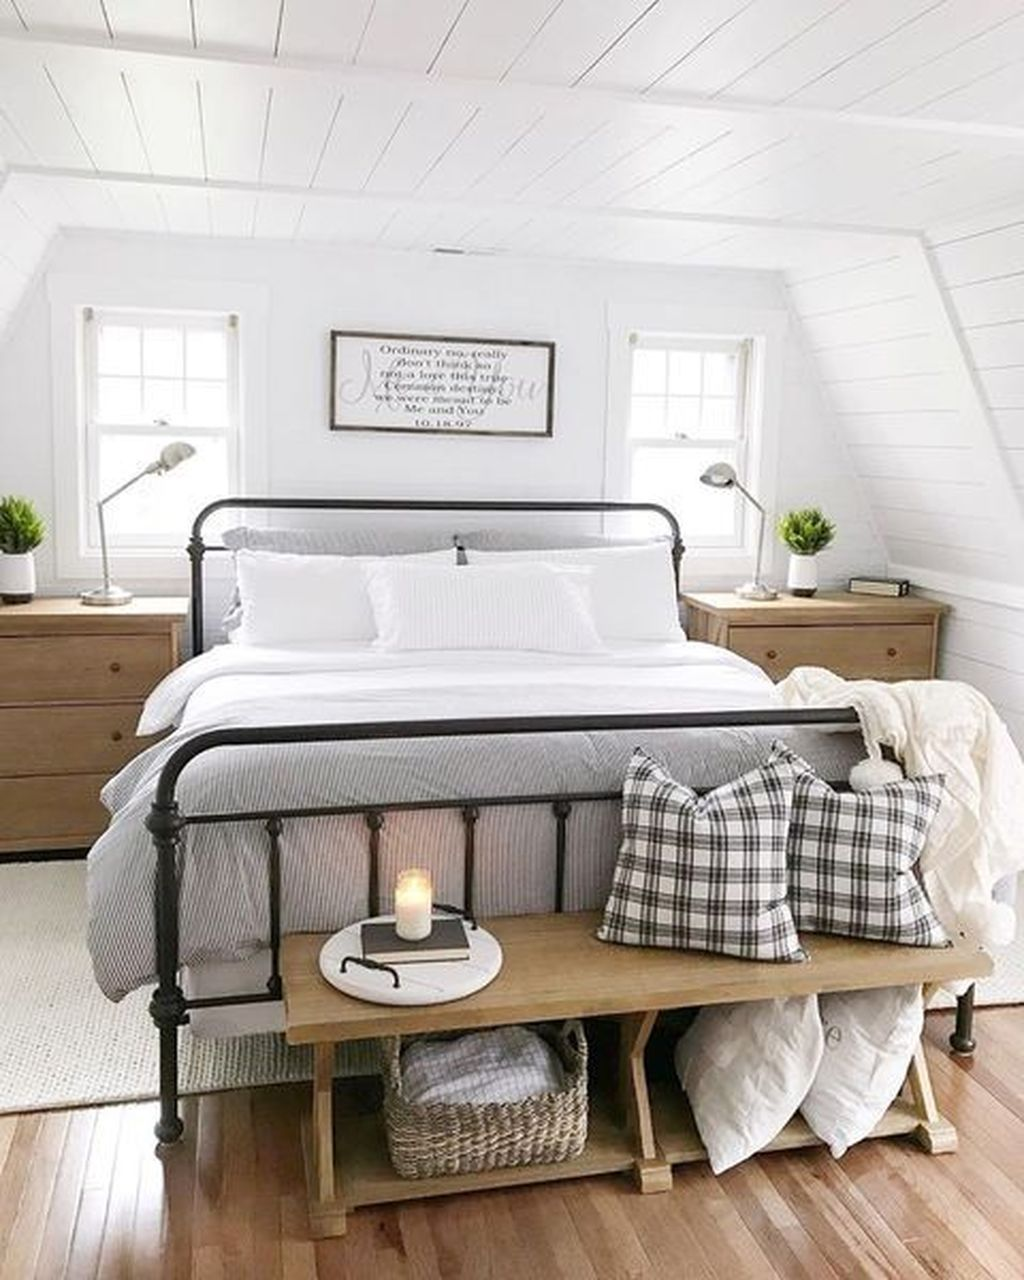 34 Awesome Cottage Bedroom Decoration Ideas In 2020 Home Bedroom Home Decor Bedroom Remodel Bedroom